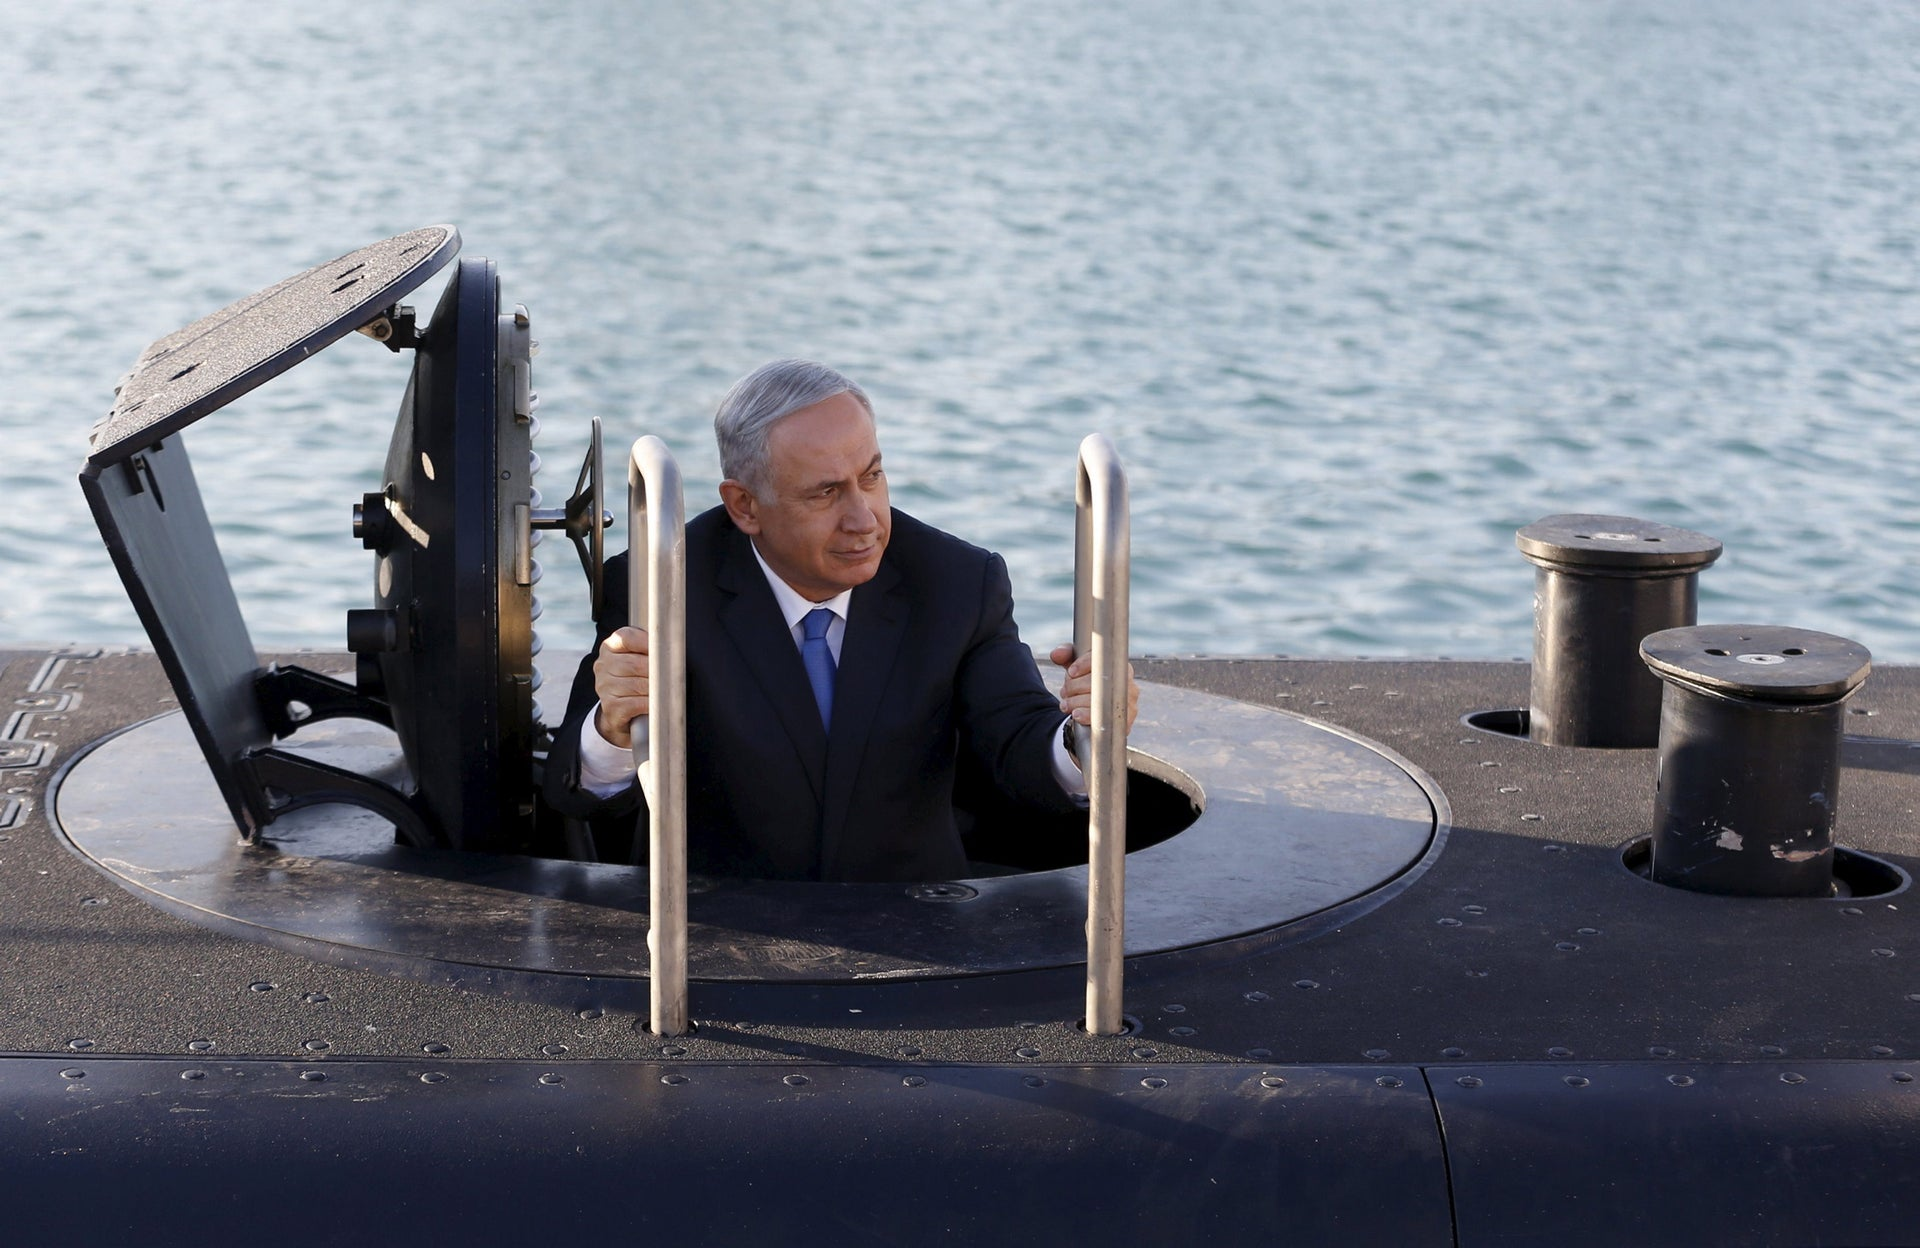 Prime Minister Benjamin Netanyahu climbs out of the Rahav, a submarine widely believed to be capable of firing nuclear missiles, Haifa, Israel, January 12, 2016.